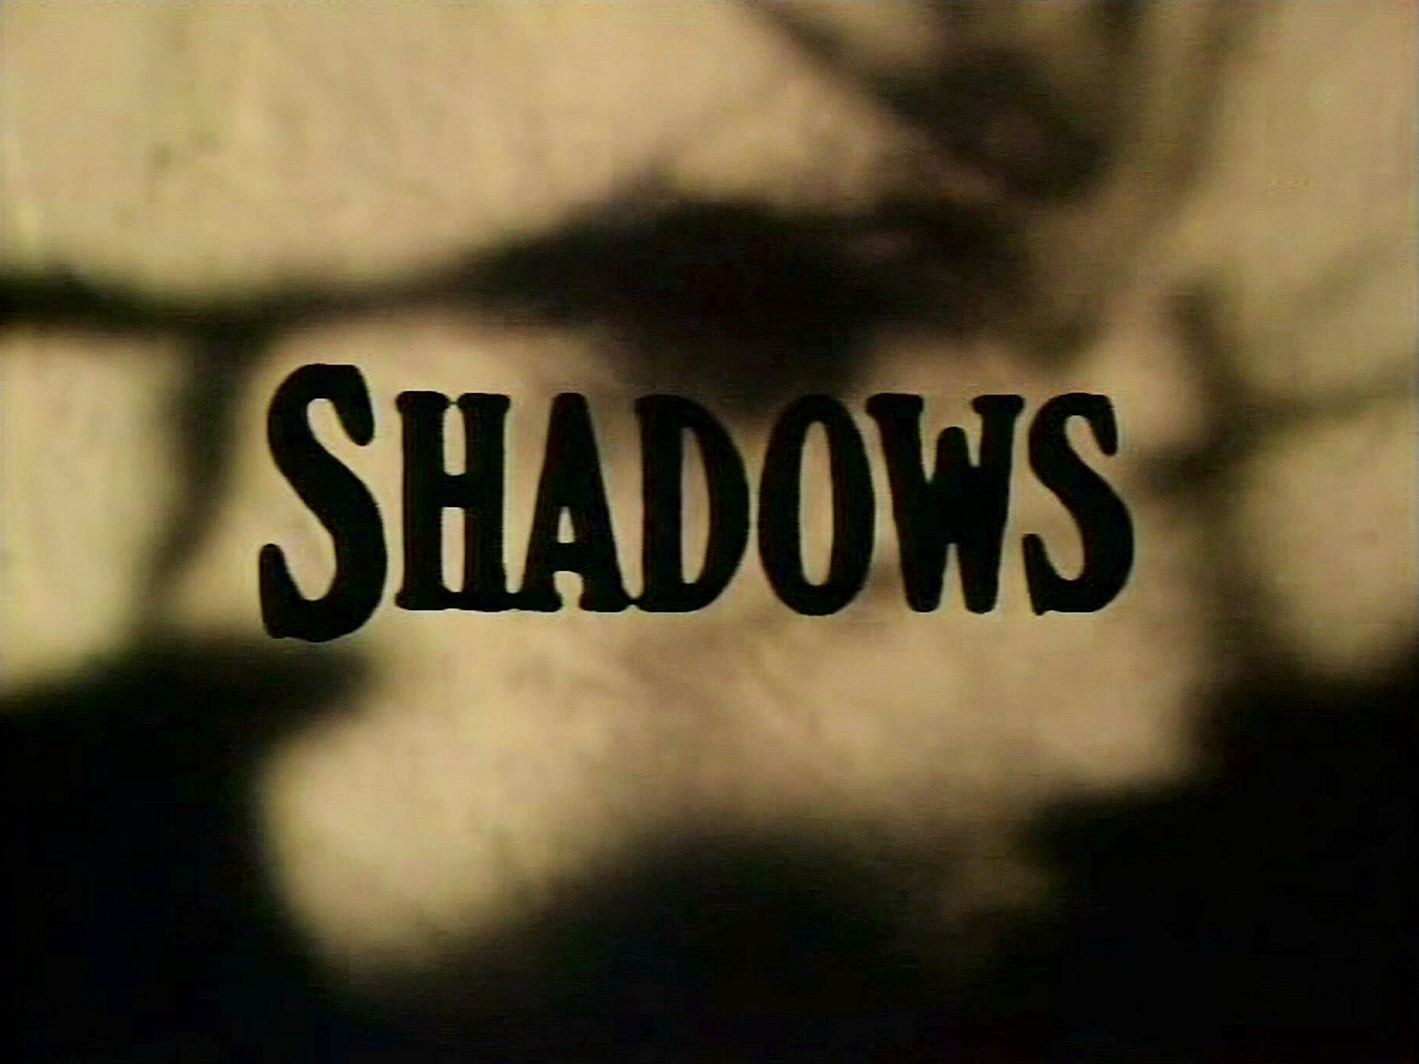 Main title from season 1 of Shadows (1975-78) (1)